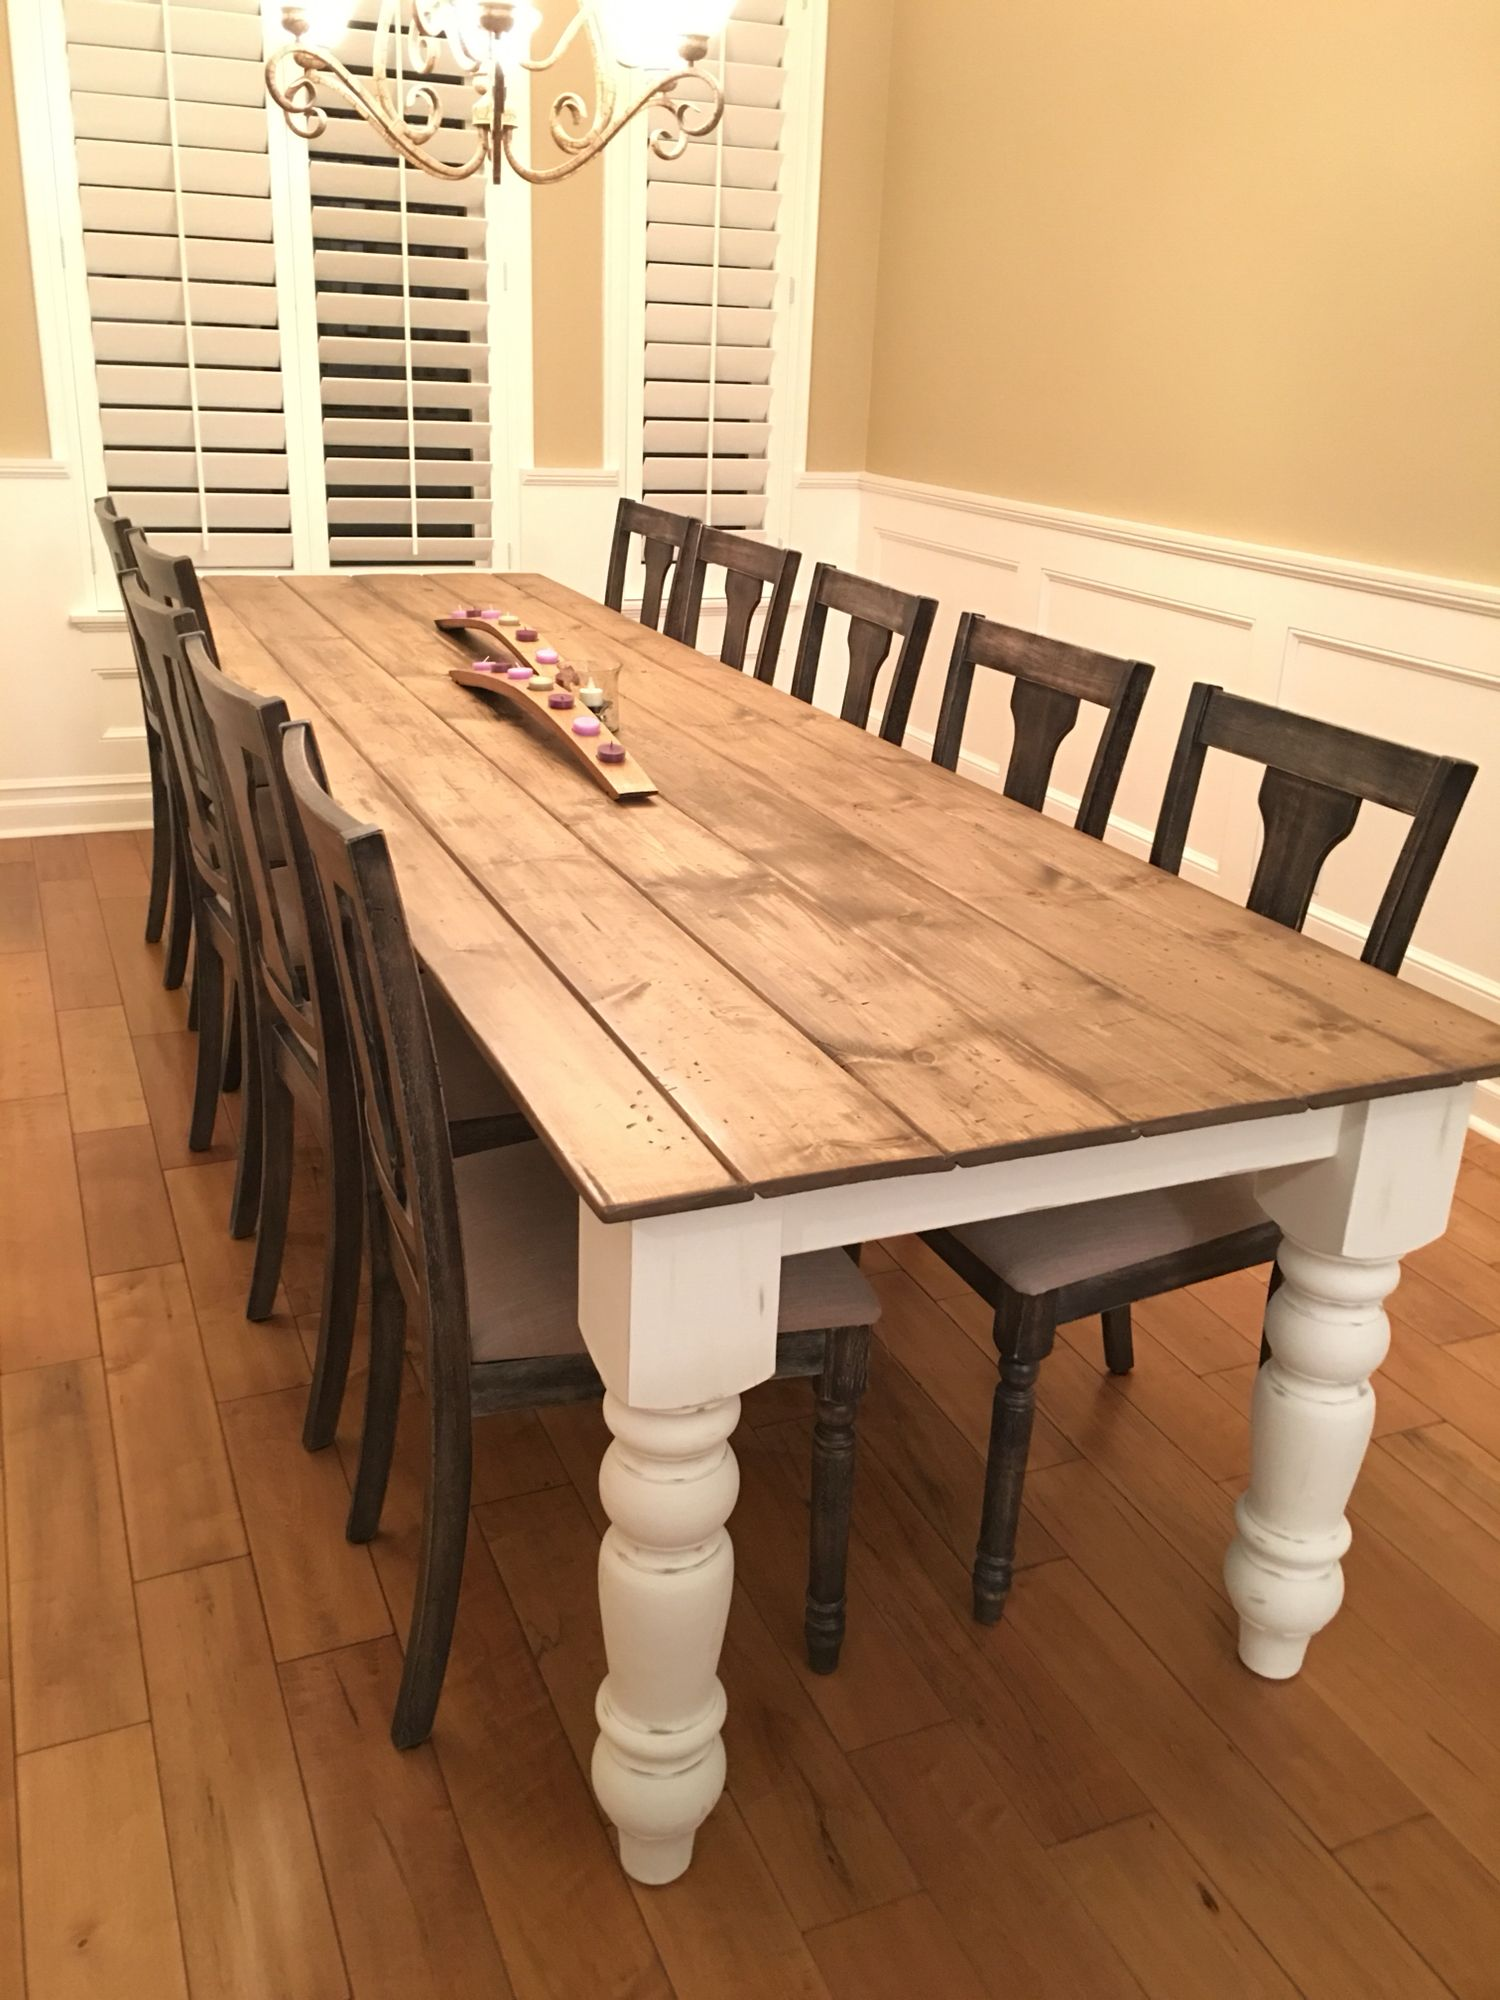 Diy Farmhouse Table My Husband Made A 10 8 Farmhouse Table Legs And Apron Ordered Farmhouse Table Plans Farmhouse Dining Room Table Farmhouse Dining Room